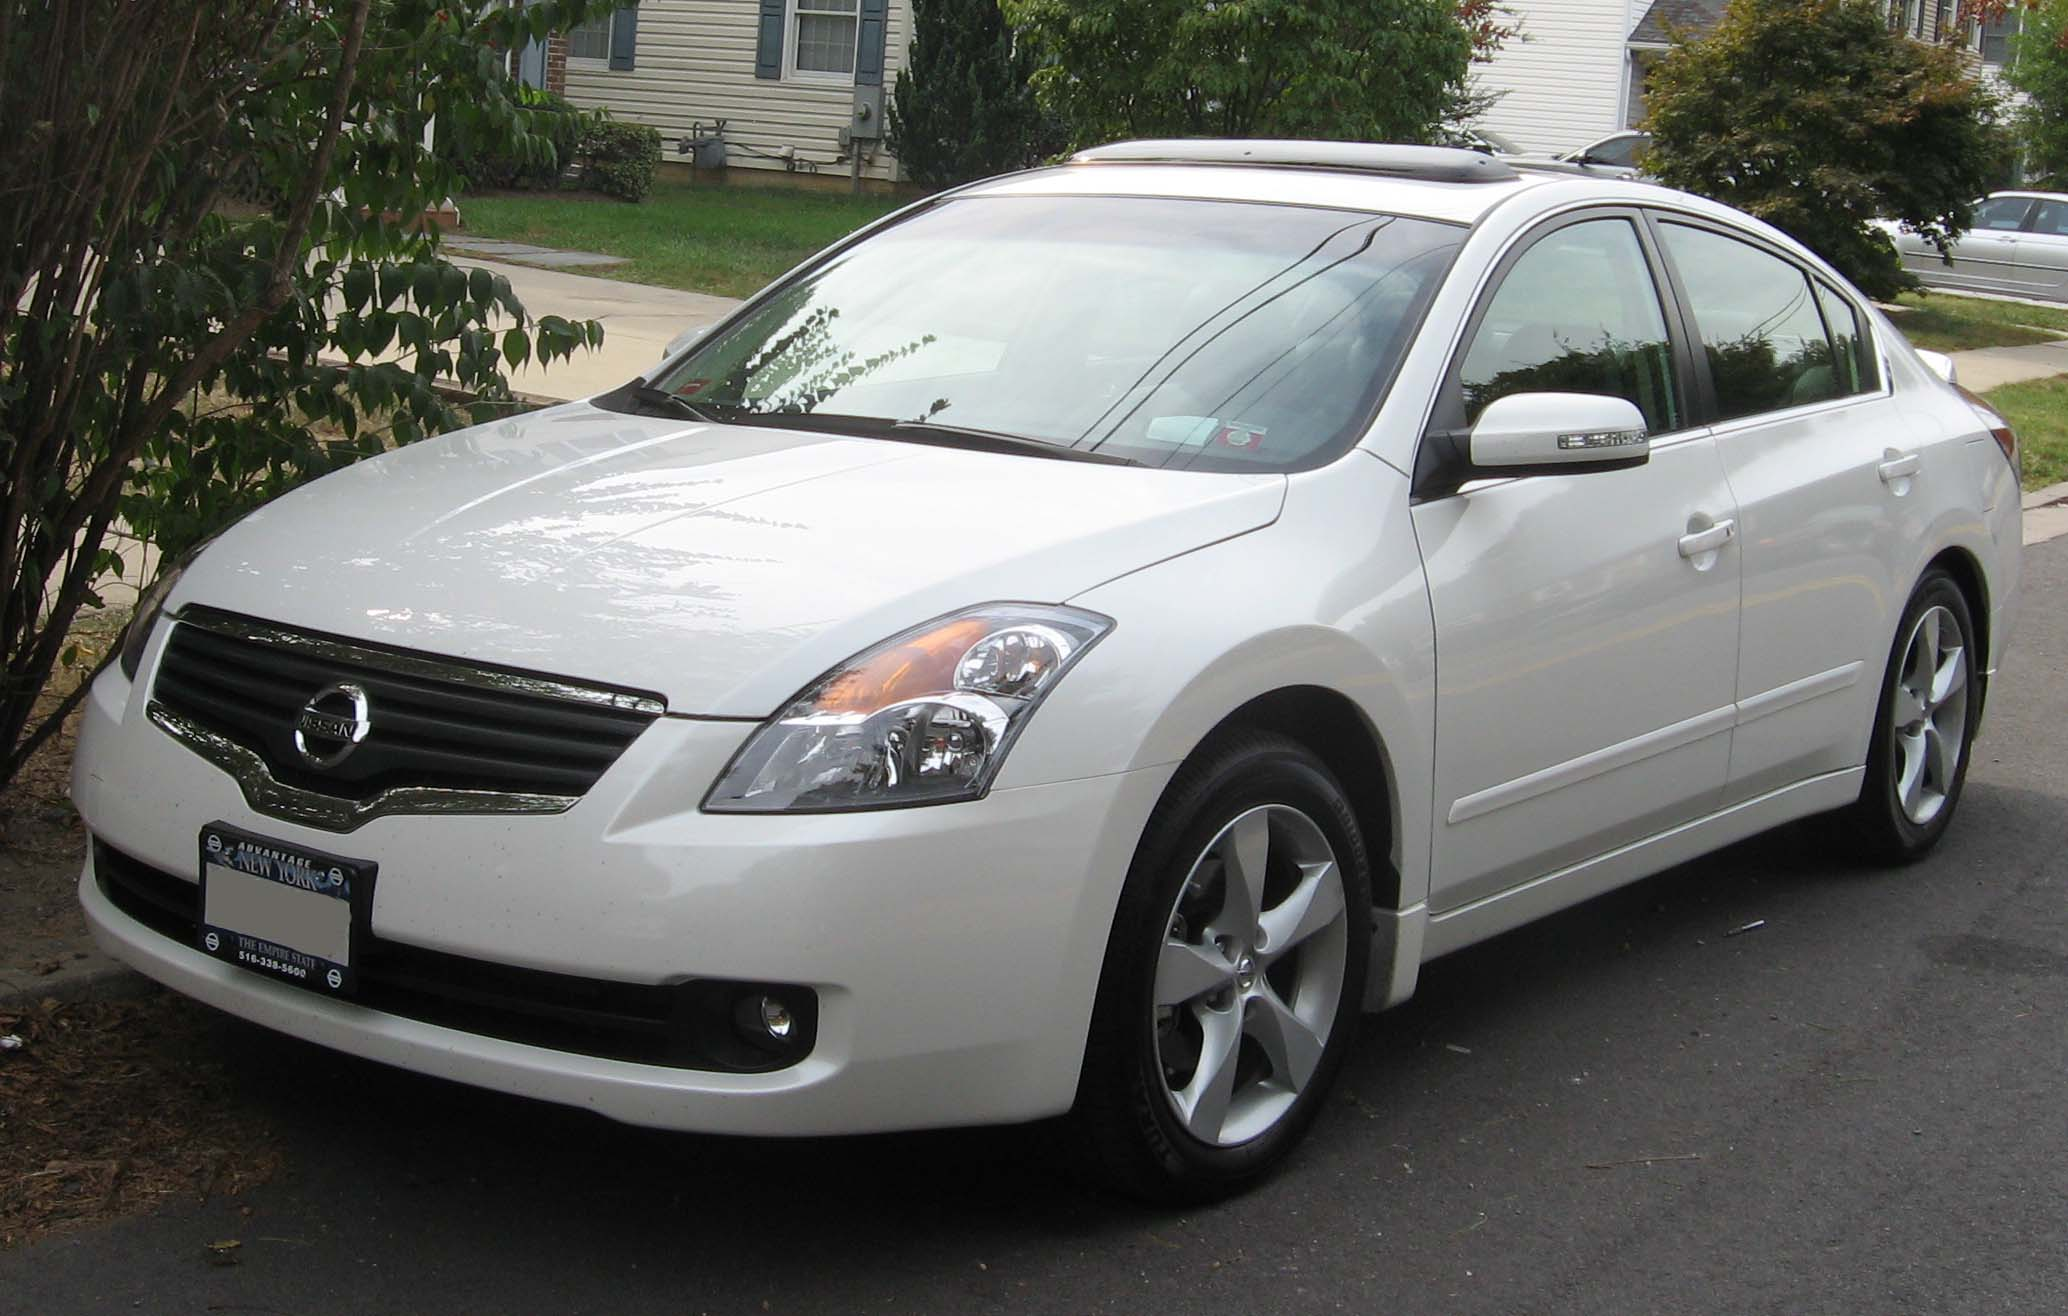 file:07-08 nissan altima 3.5se - wikimedia commons